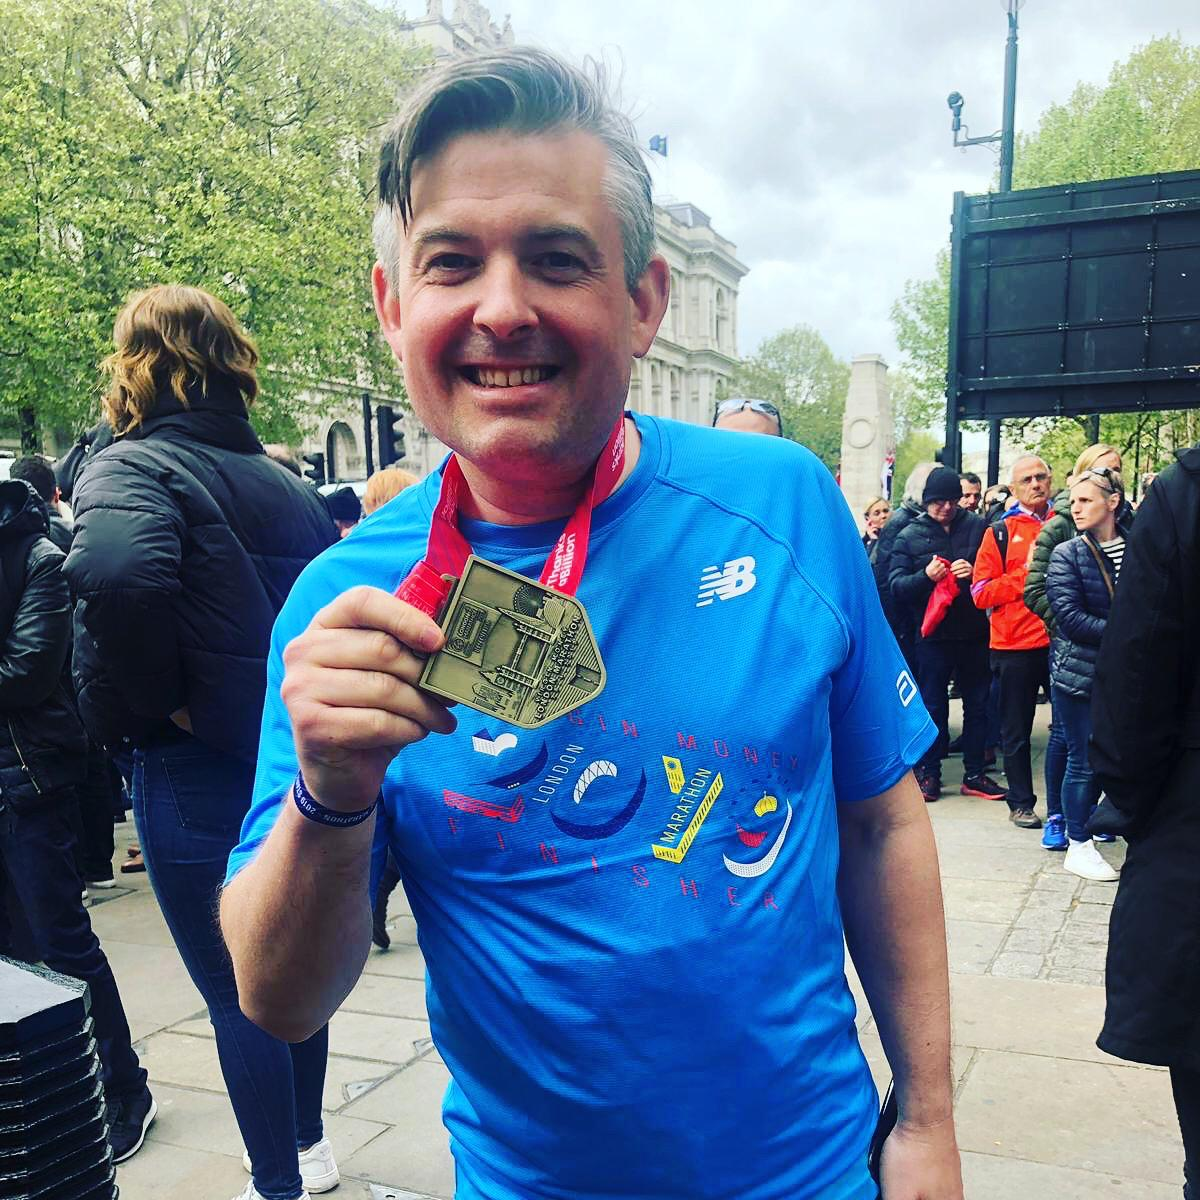 """After completing the London Marathon Jon said: """"I've been overwhelmed with huge support from people across Leicester South again for what is my third London Marathon for the children of alcoholics charity Nacoa."""" - Monday April 29 2019"""